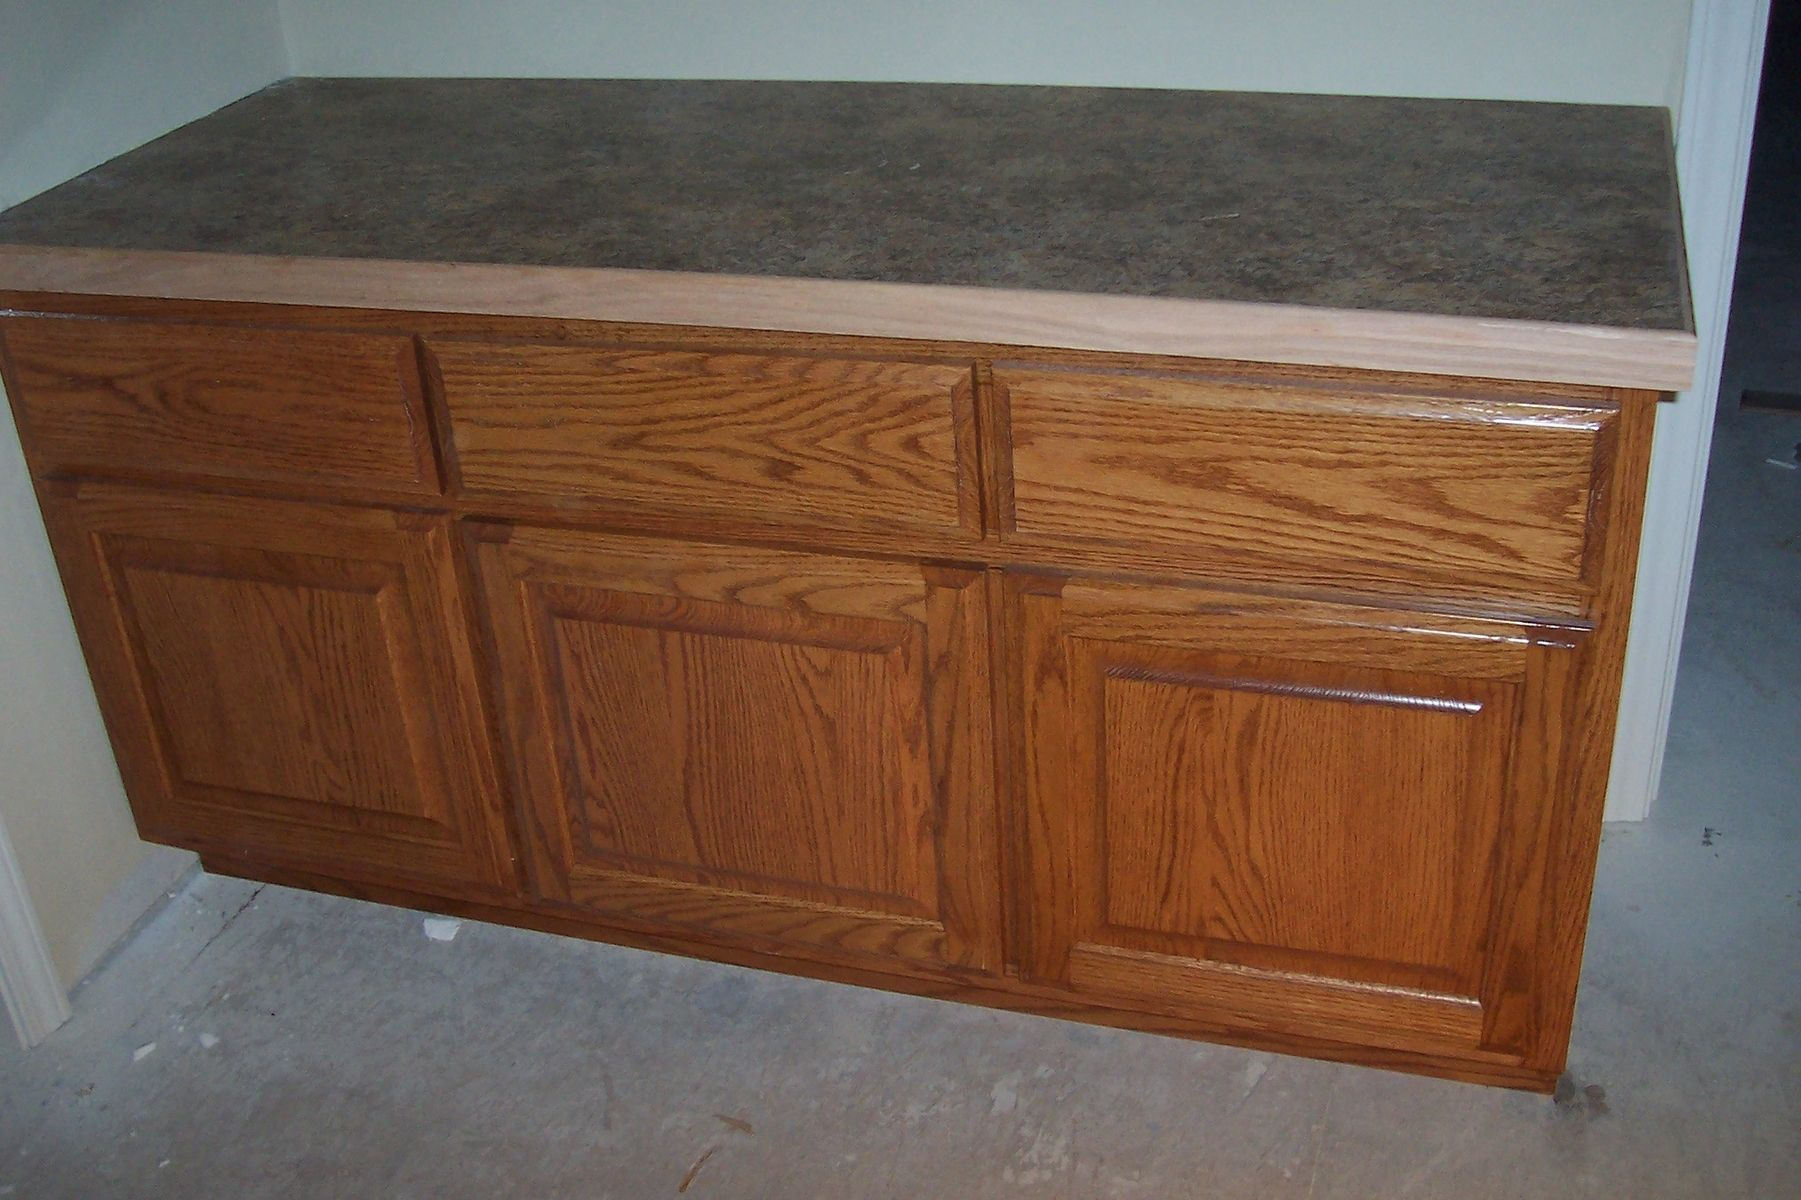 Hand Crafted Oak Bathroom Cabinet With Laminate Countertop